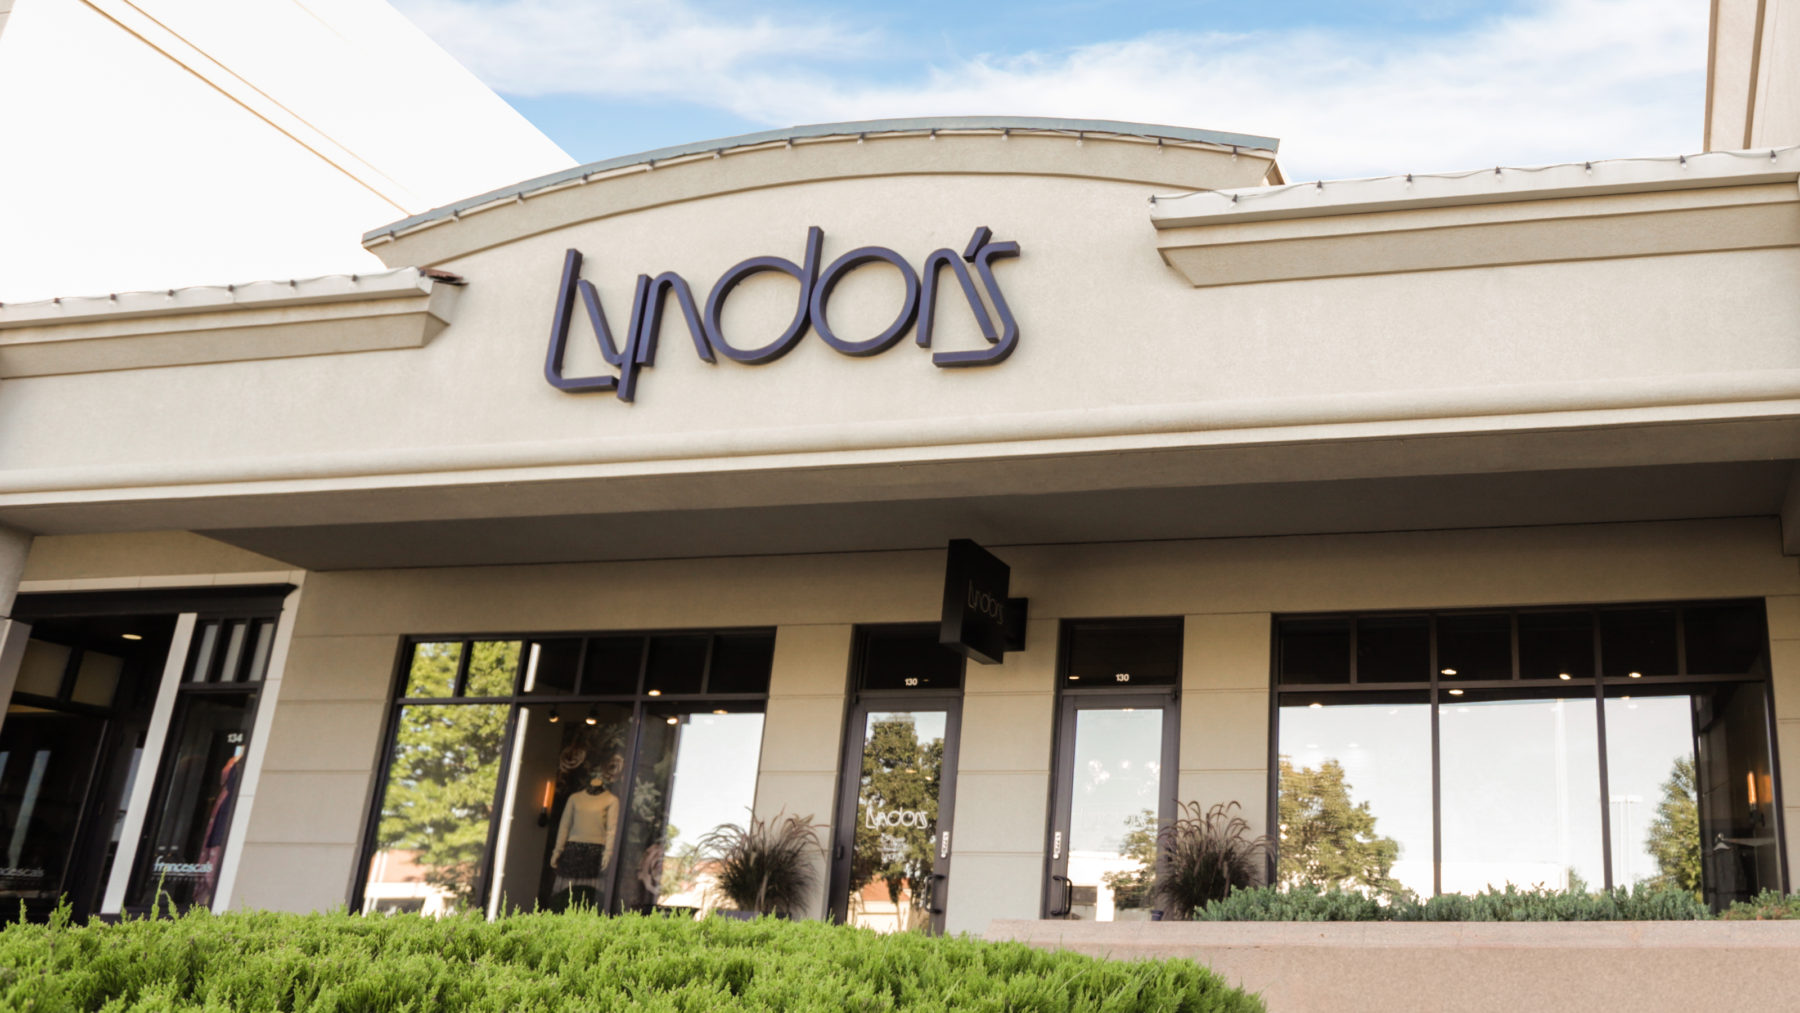 Lyndons Wichita